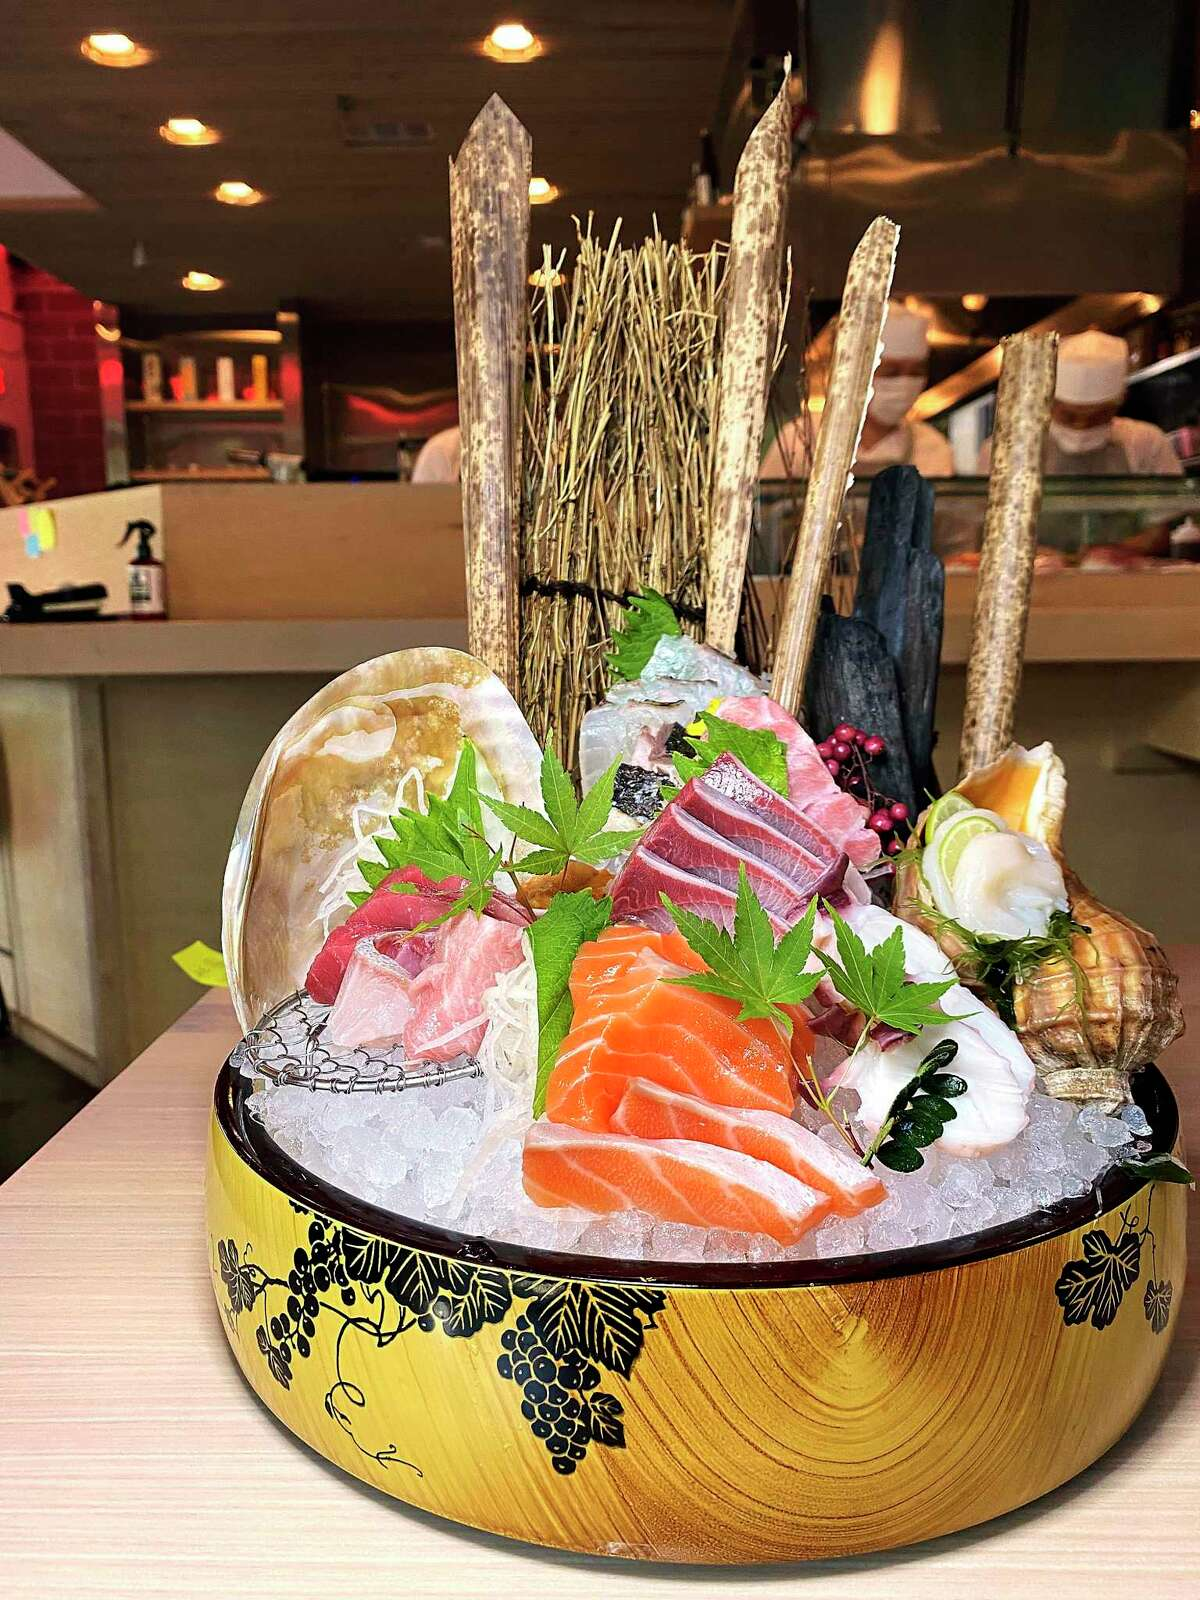 The sashimi mix on a recent night at Shiro Japanese Bistro included, from left, various varieties of bluefin tuna and salmon, sea urchin, hamachi, mackerel, red sea bream, otoro bluefin tuna, octopus and sea scallops.